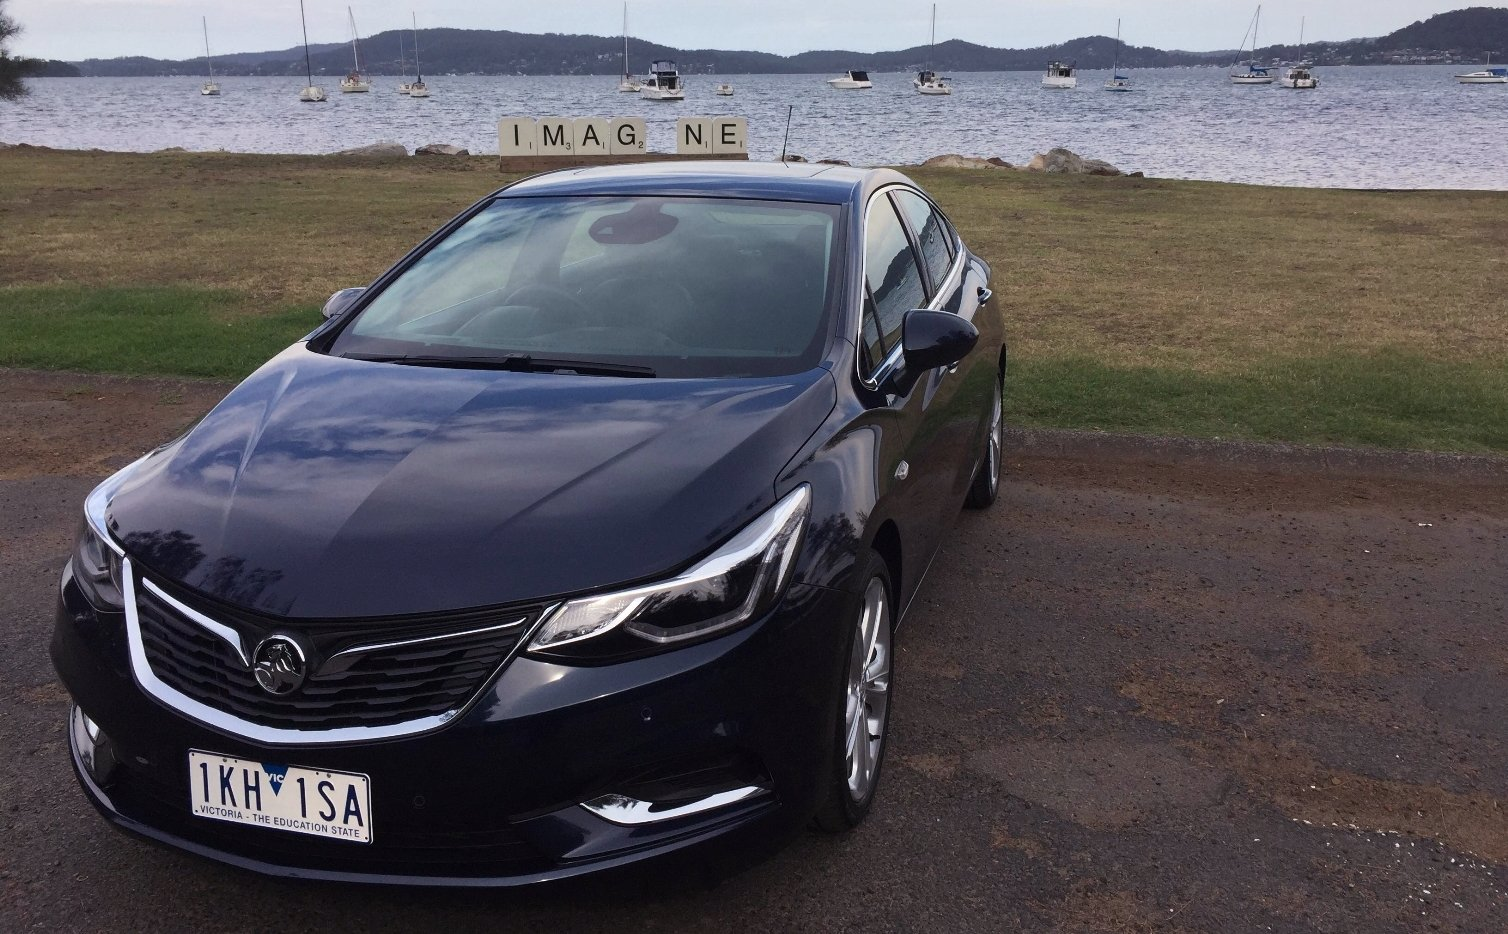 Reviews On Holden Cruze >> Auto Review: 2018 Holden Astra LTZ